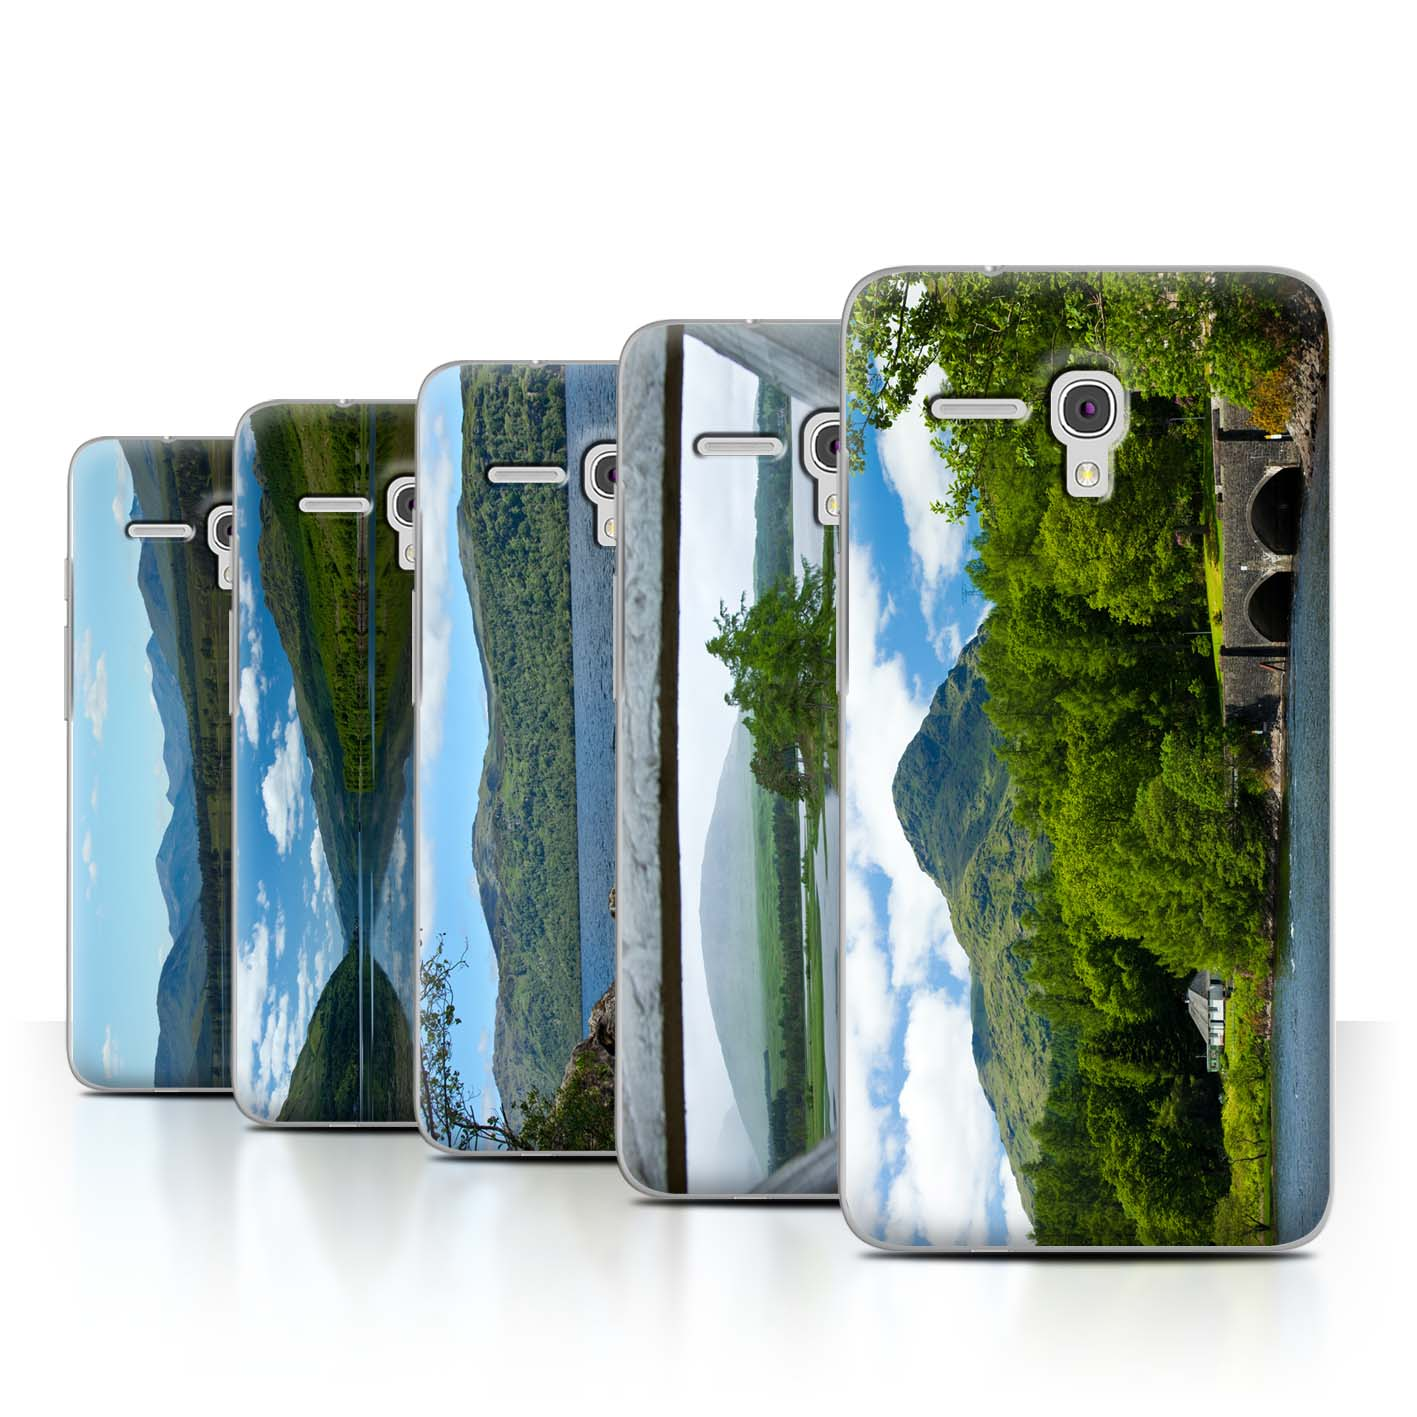 STUFF4-Back-Case-Cover-Skin-for-Alcatel-Fierce-XL-Scottish-Landscape